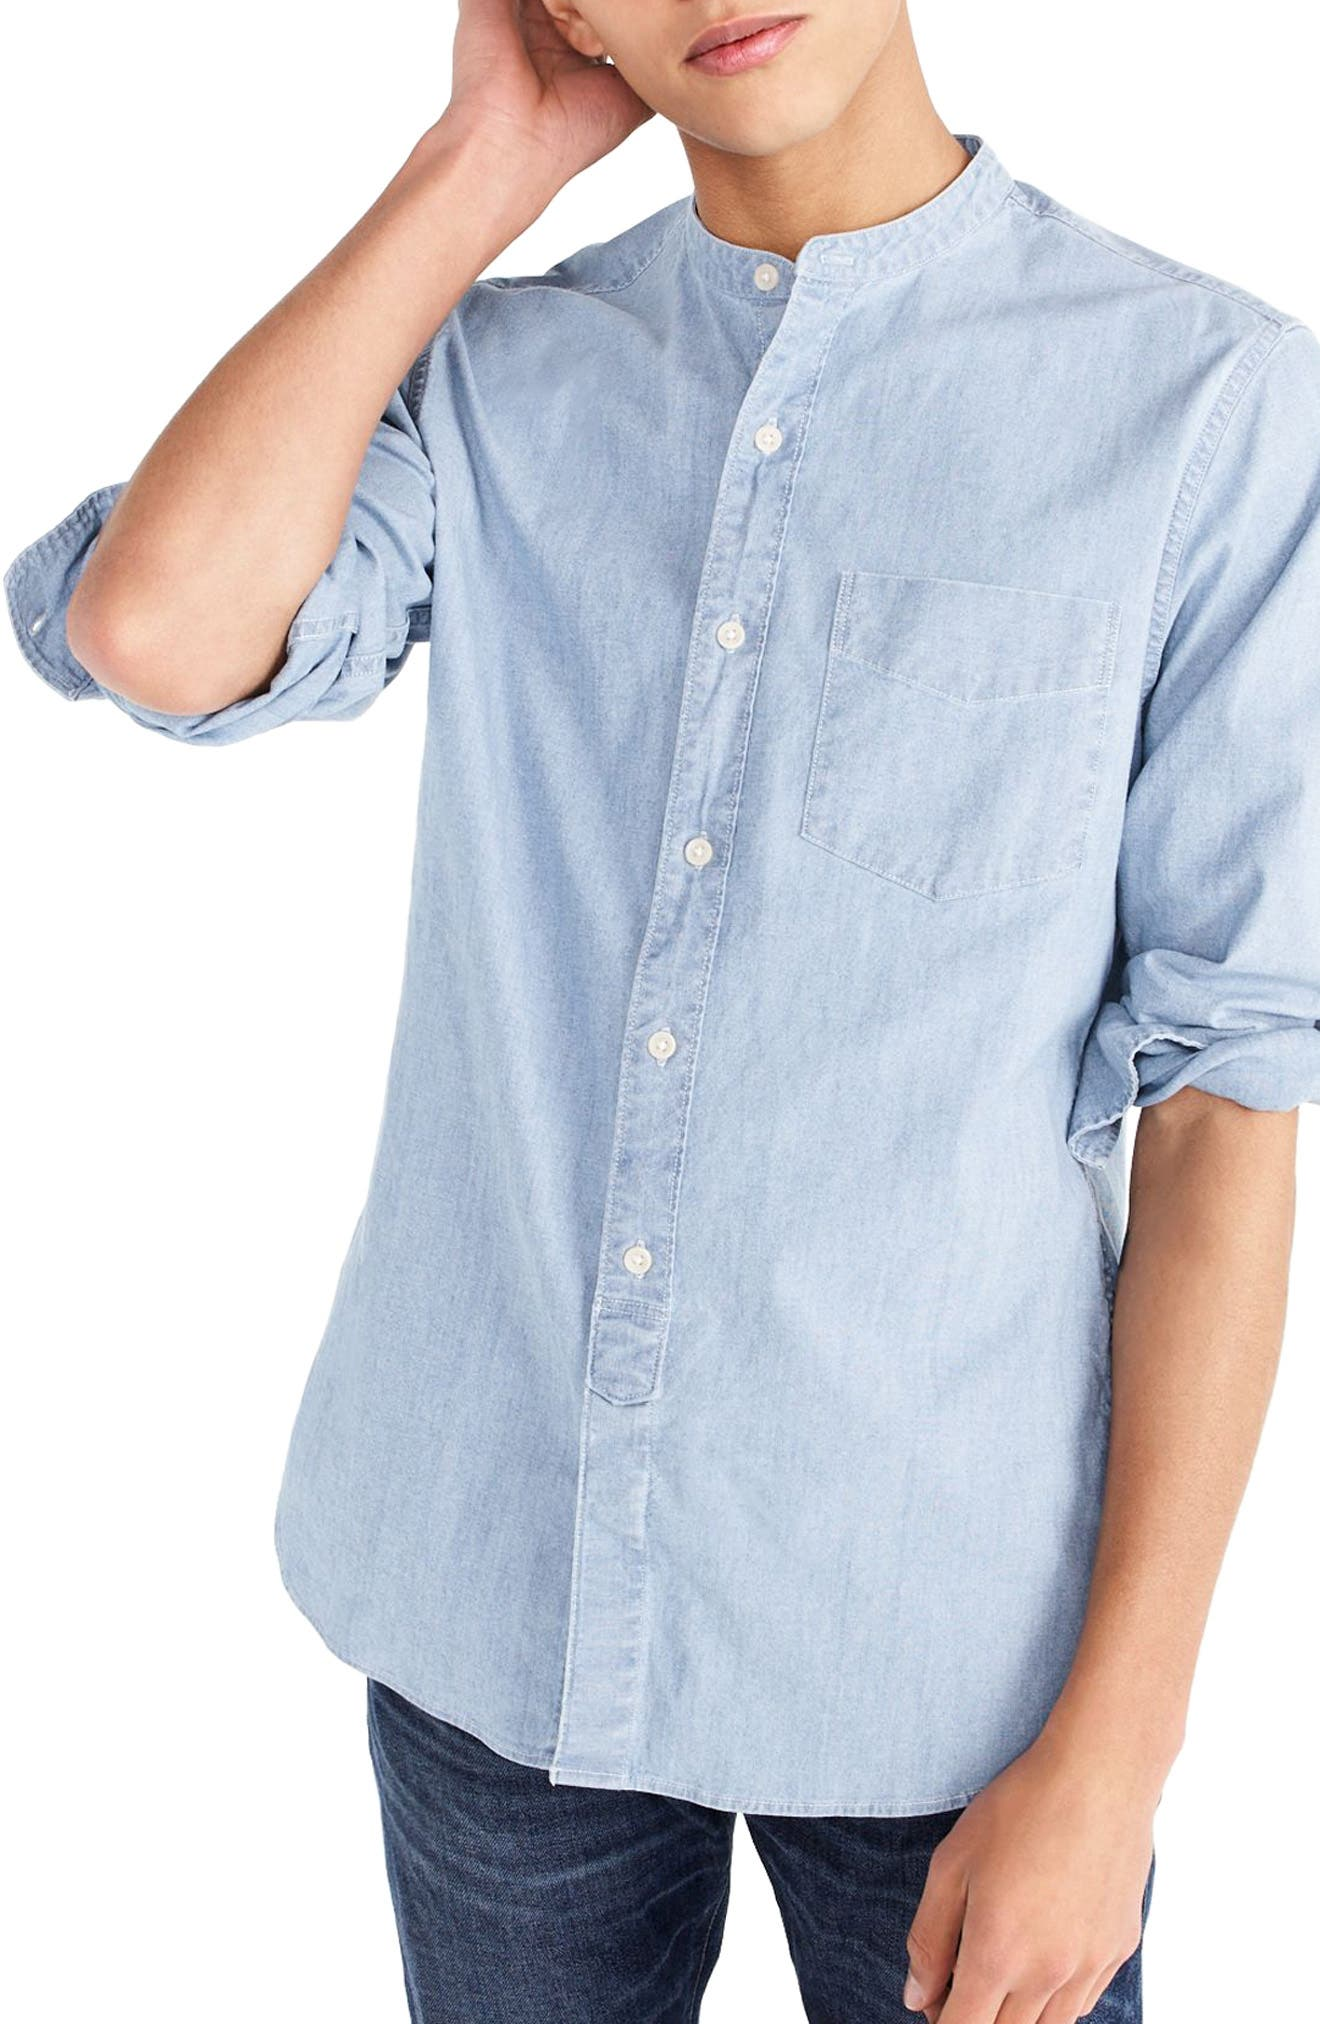 J.Crew Stretch Chambray Band Collar Shirt,                         Main,                         color, Indigo